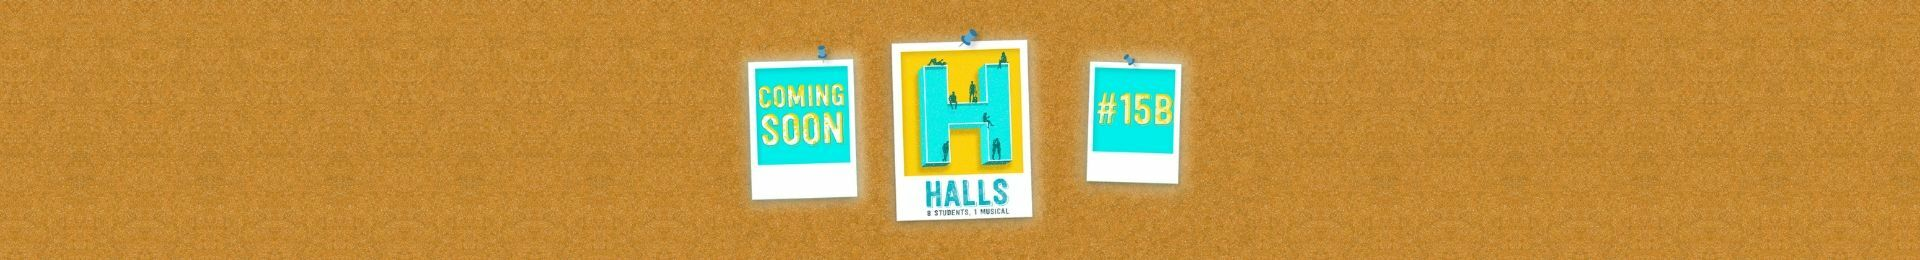 Halls The Musical banner image